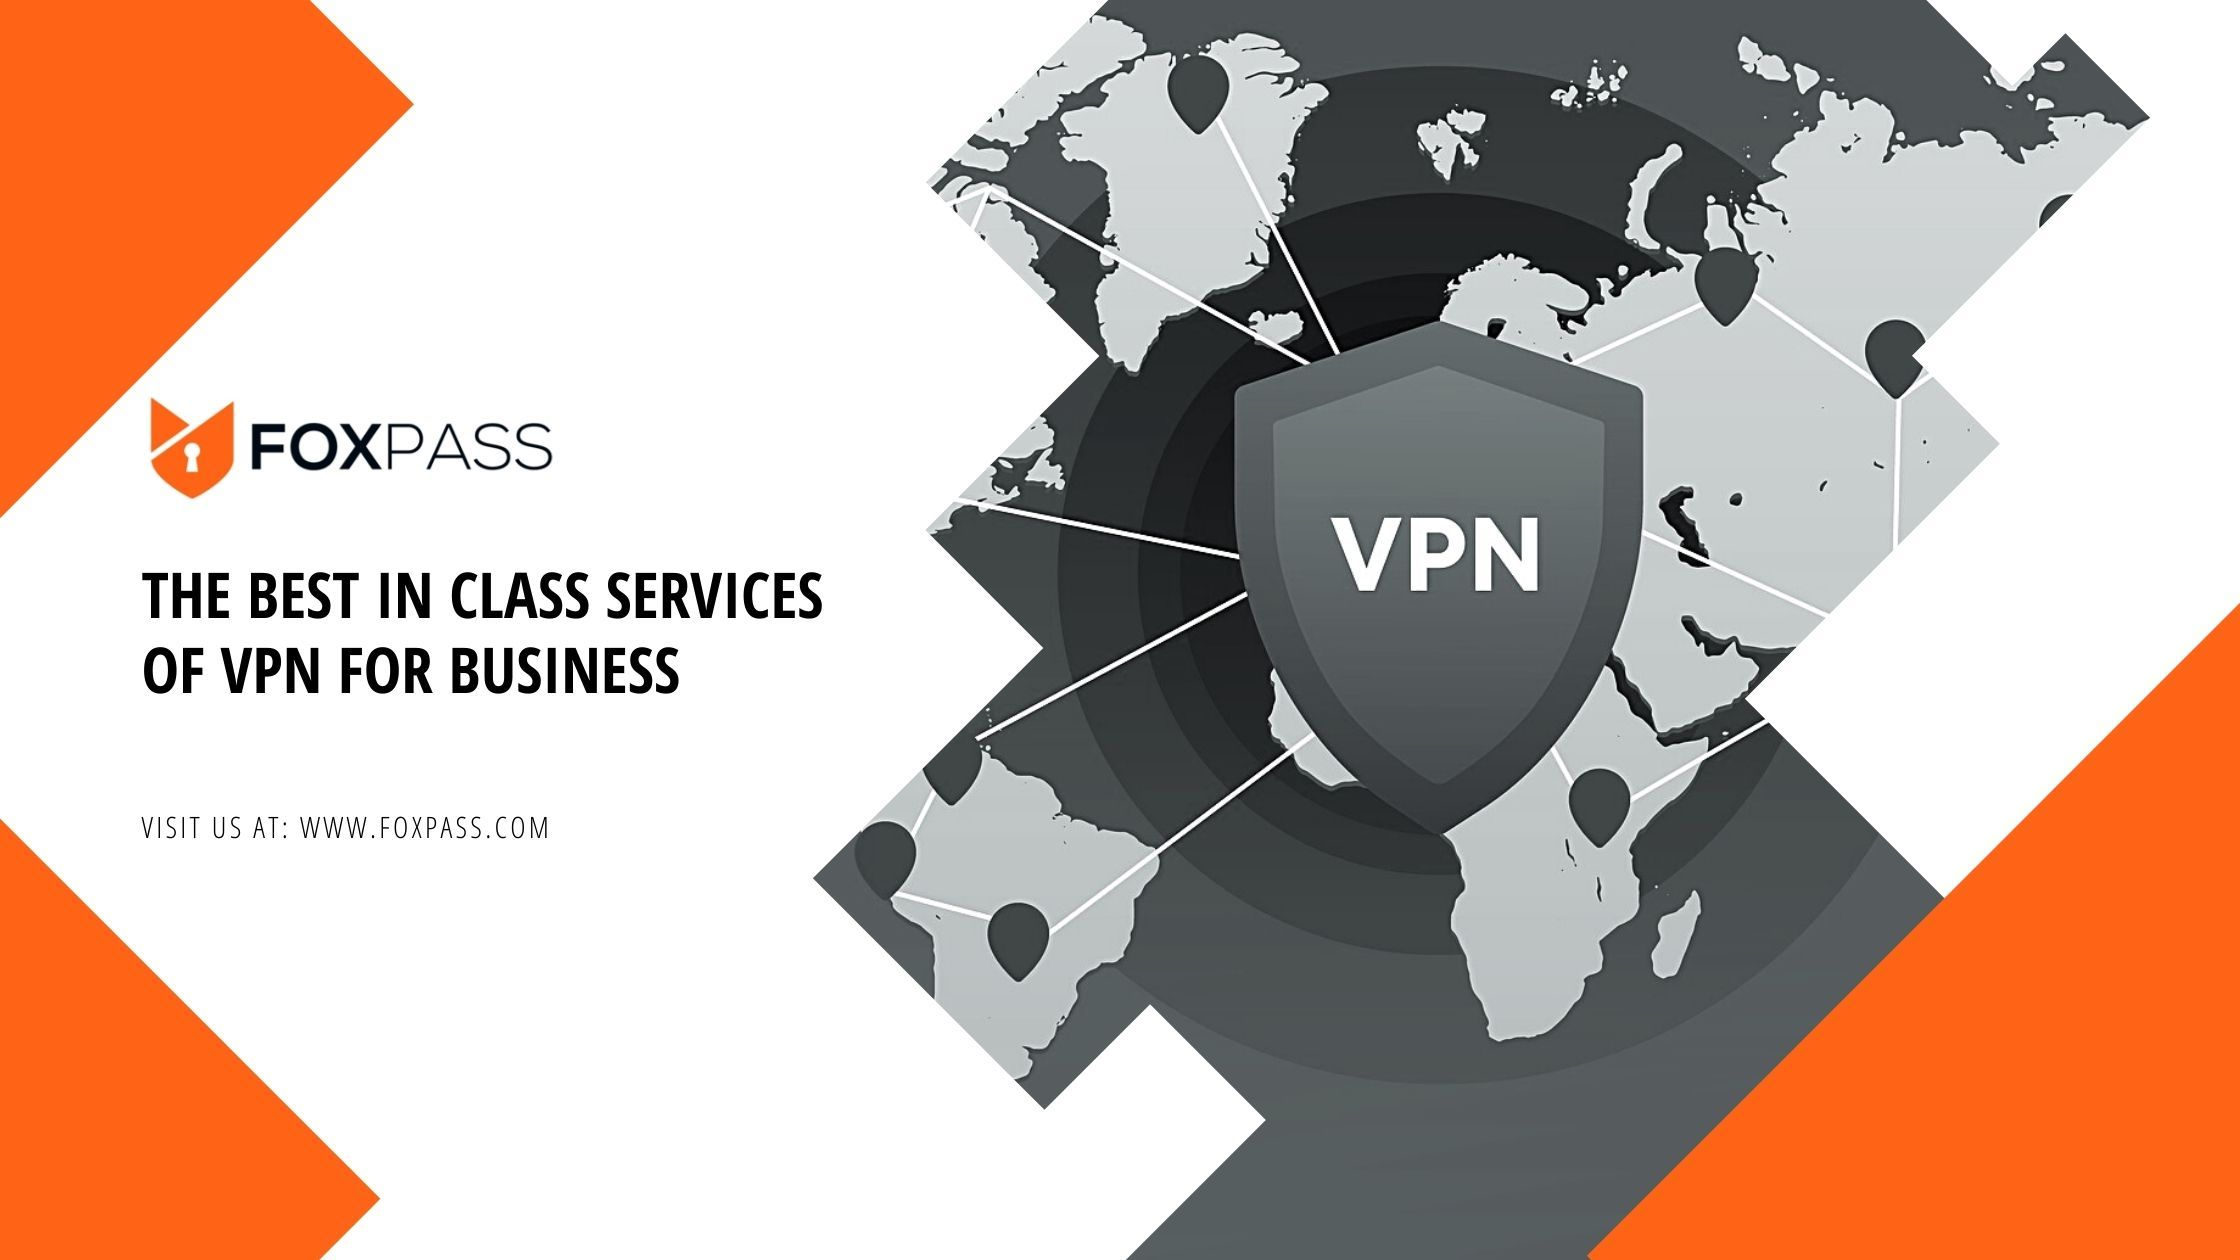 0a43b19bdc4d0cdad26930718a17753b - What Is The Best Vpn Service Provider